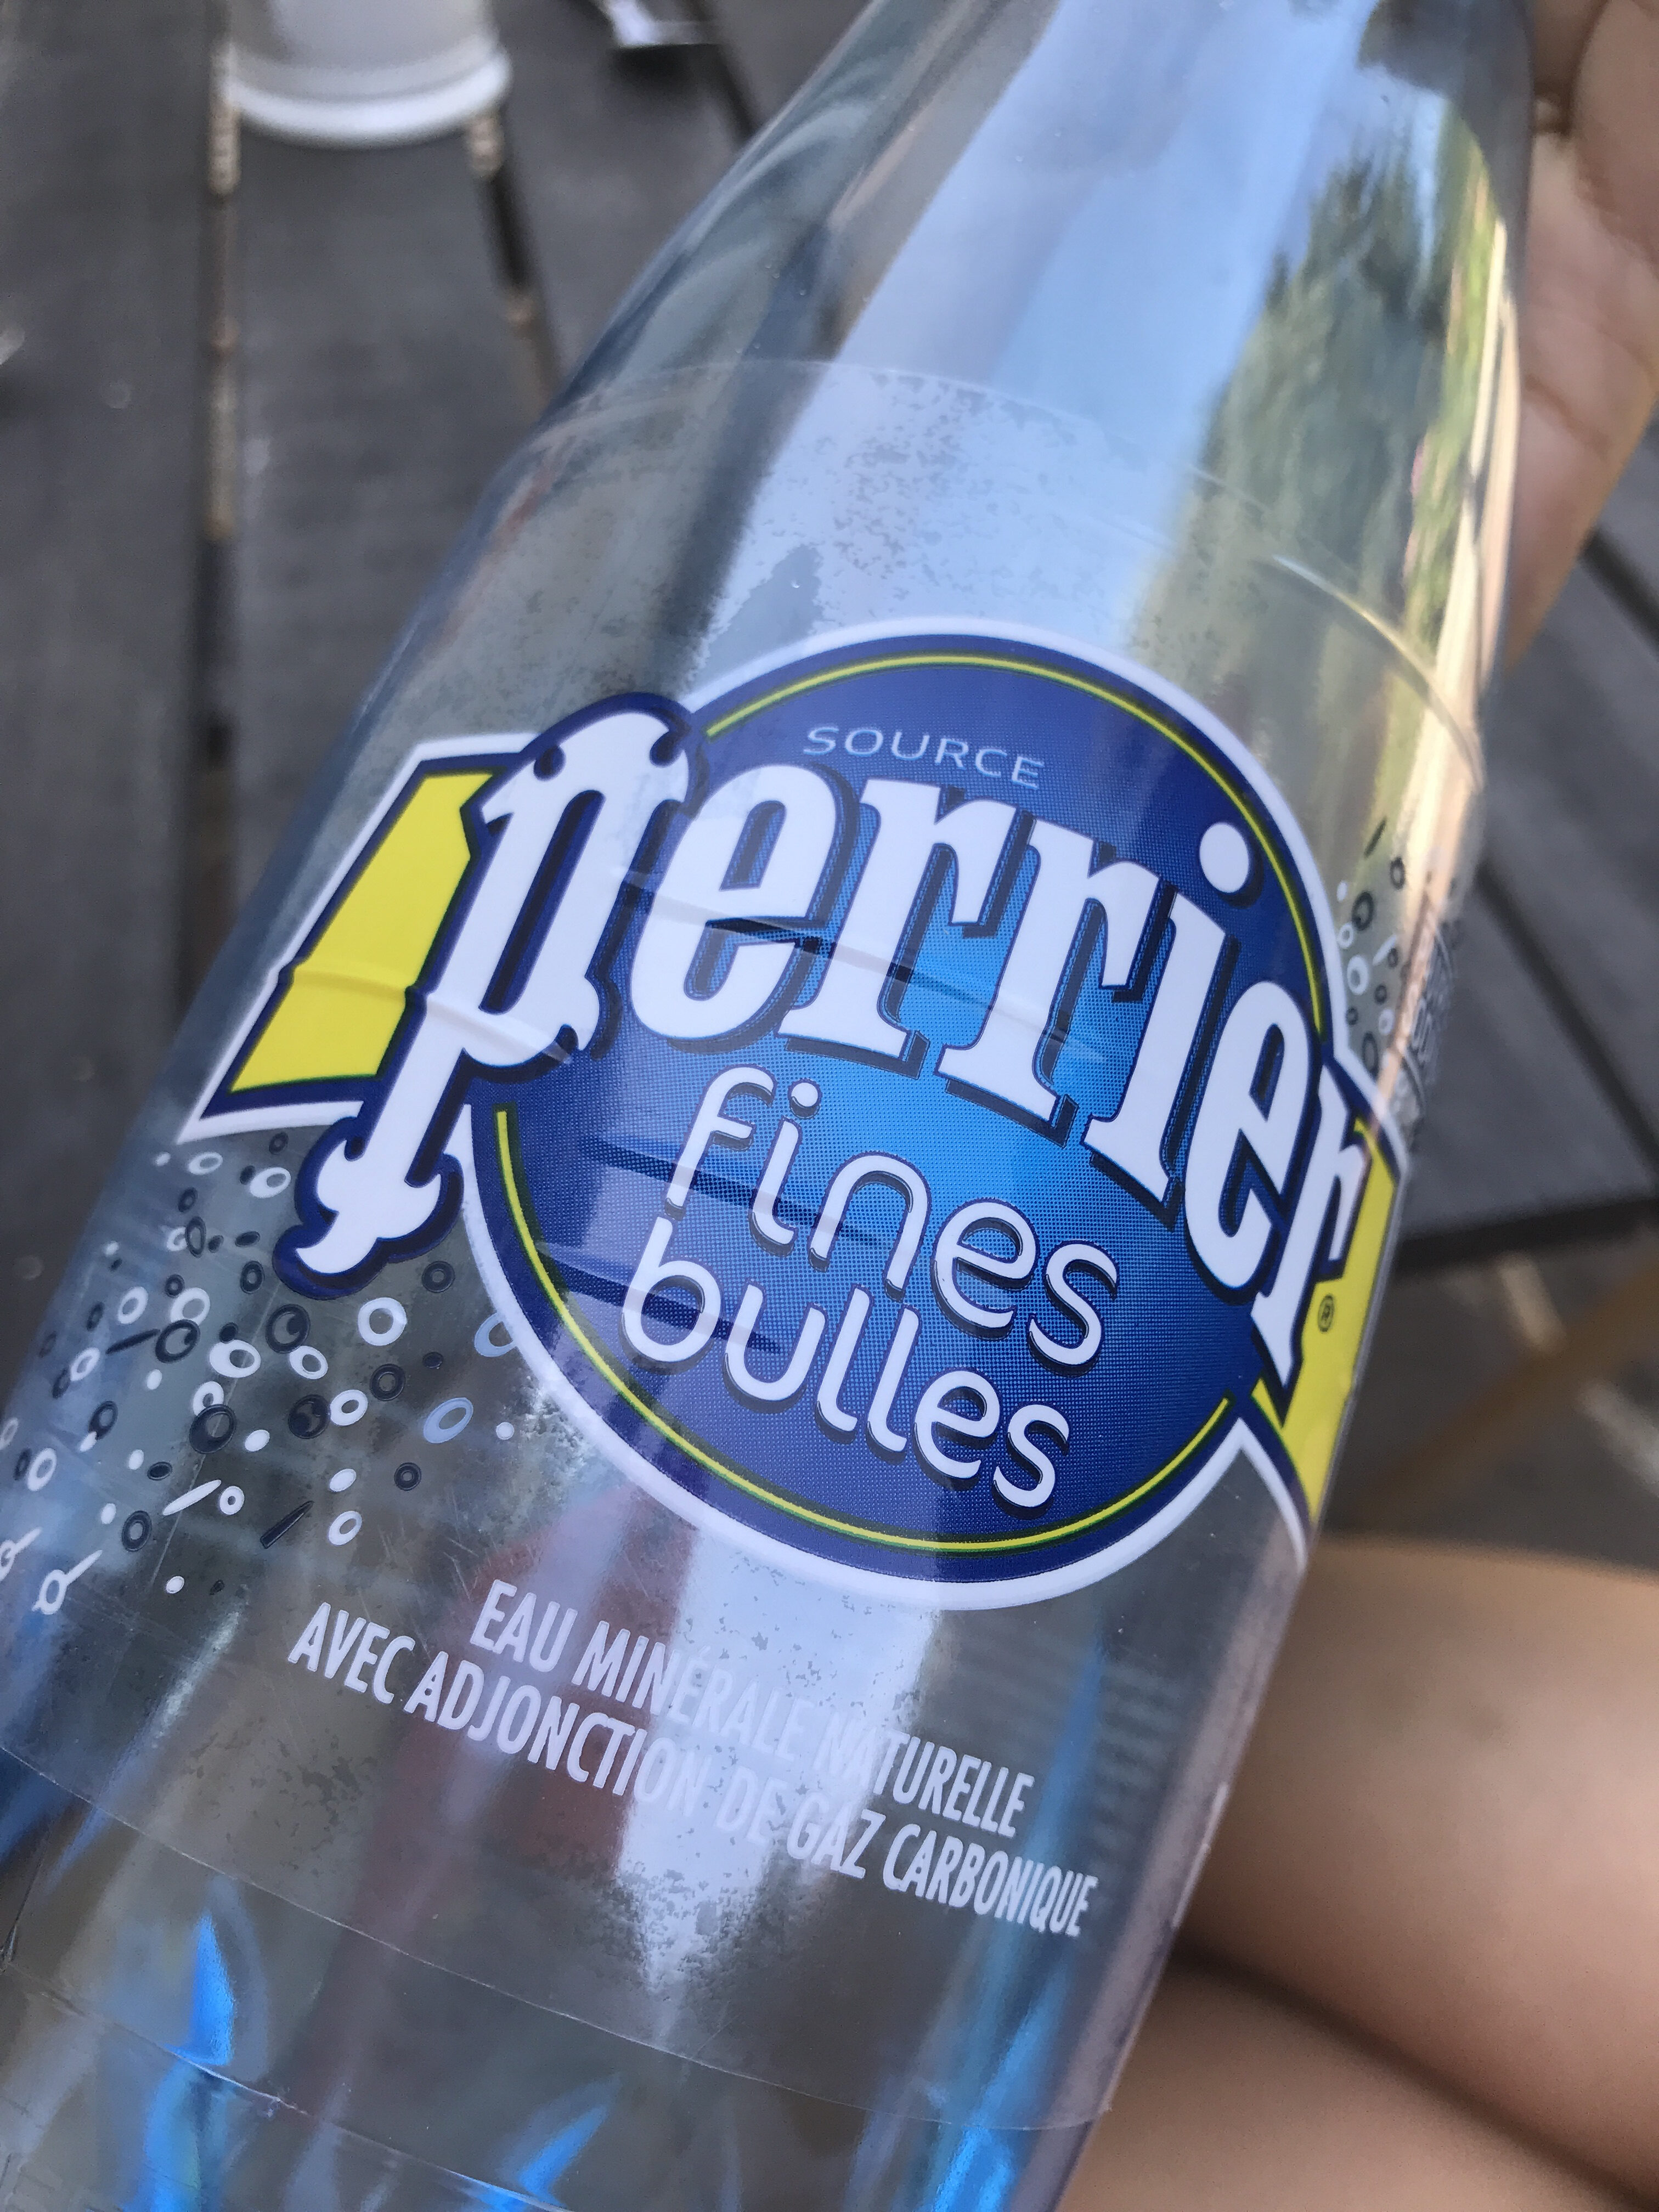 Perrier fines bulles - Prodotto - fr